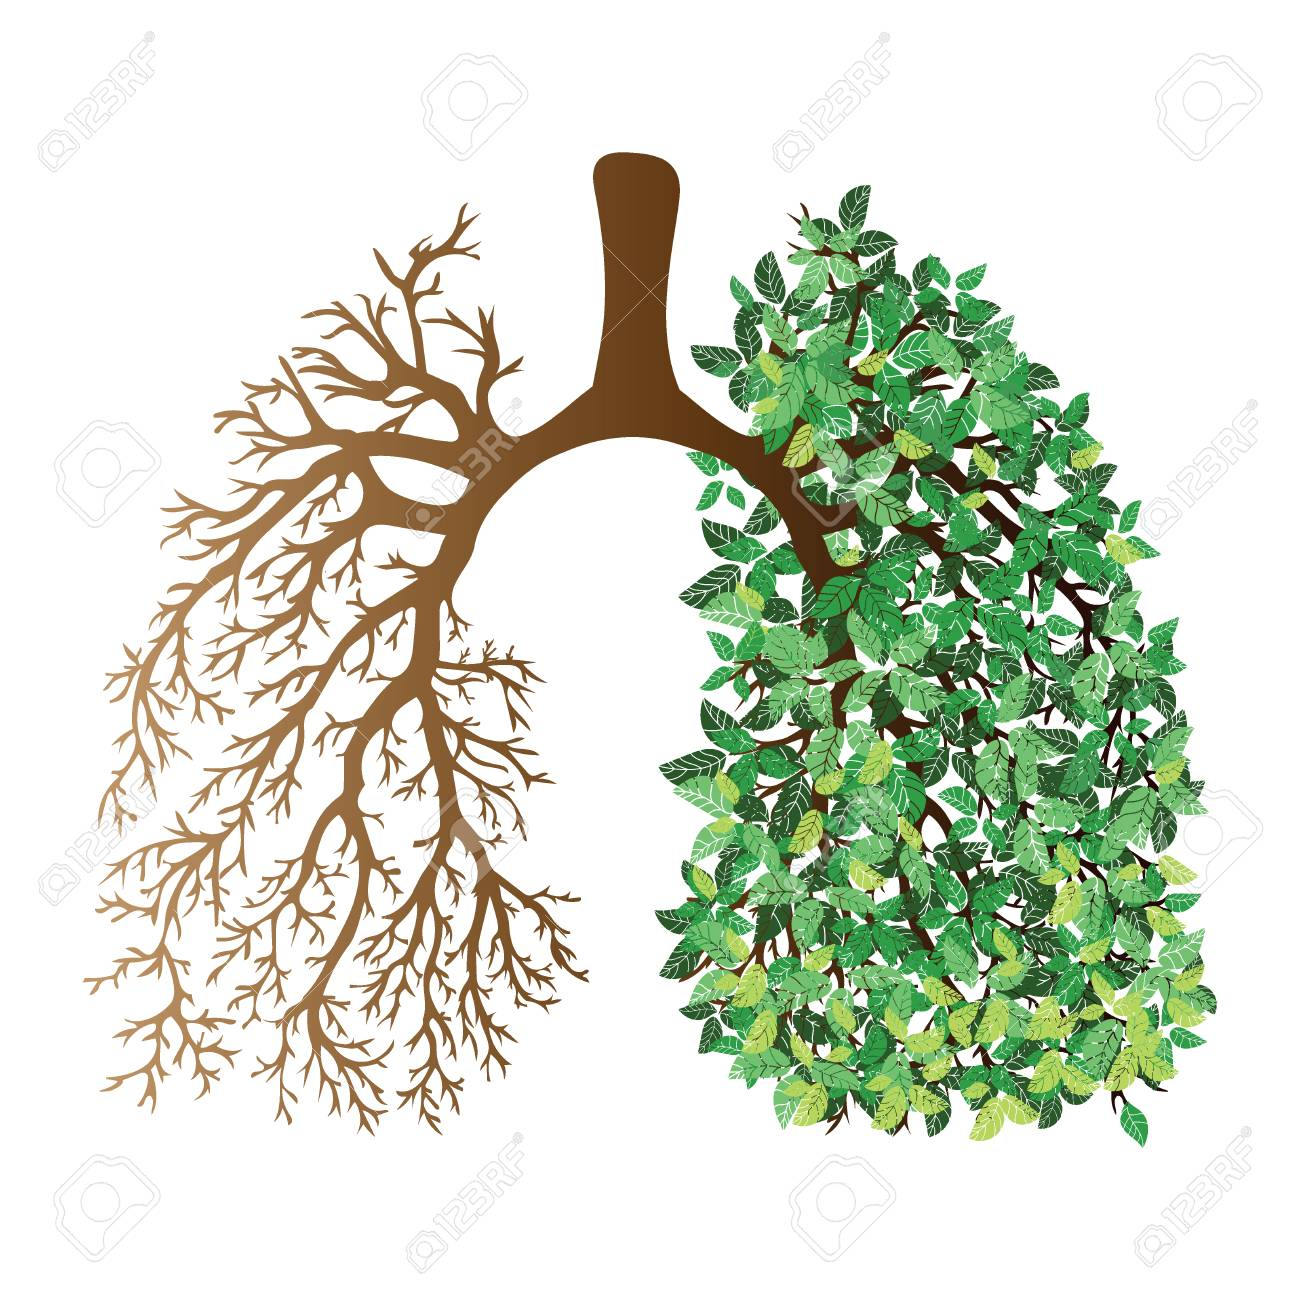 Human lungs. Respiratory system. Healthy lungs. Light in the form of a tree. Line art. Drawing by hand. Medicine. - 90830873